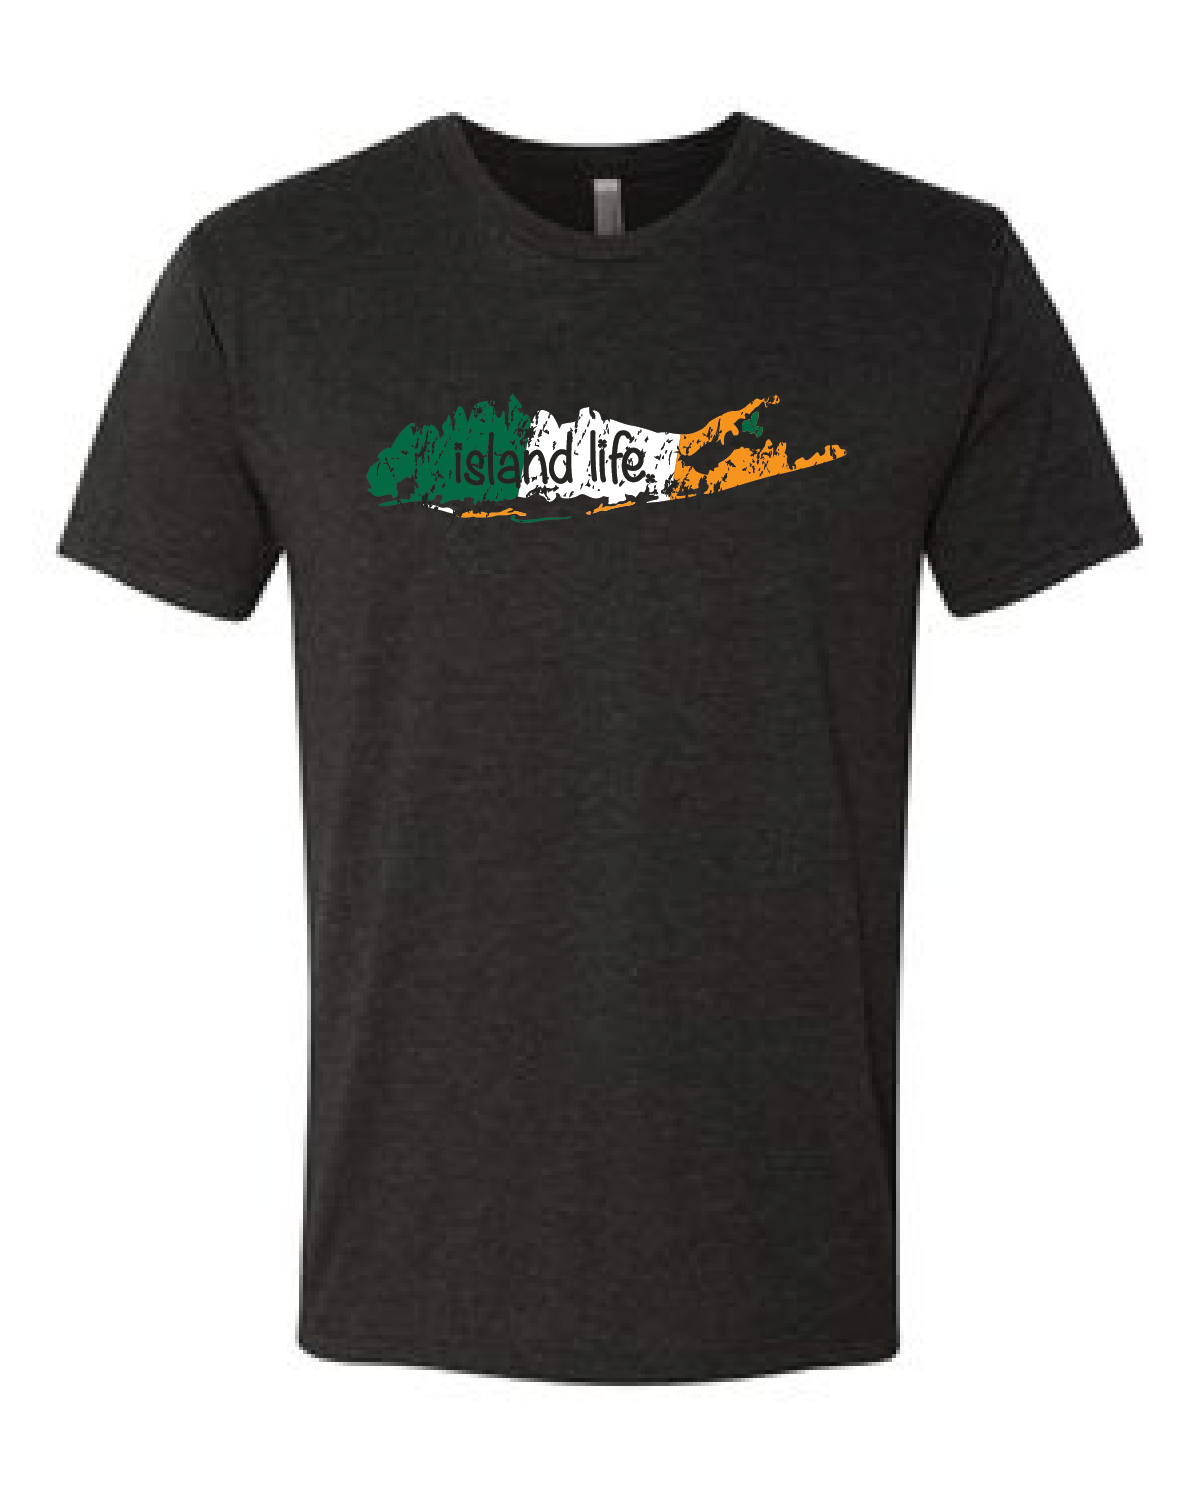 Image of Island Life St. Paddy's T-Shirt